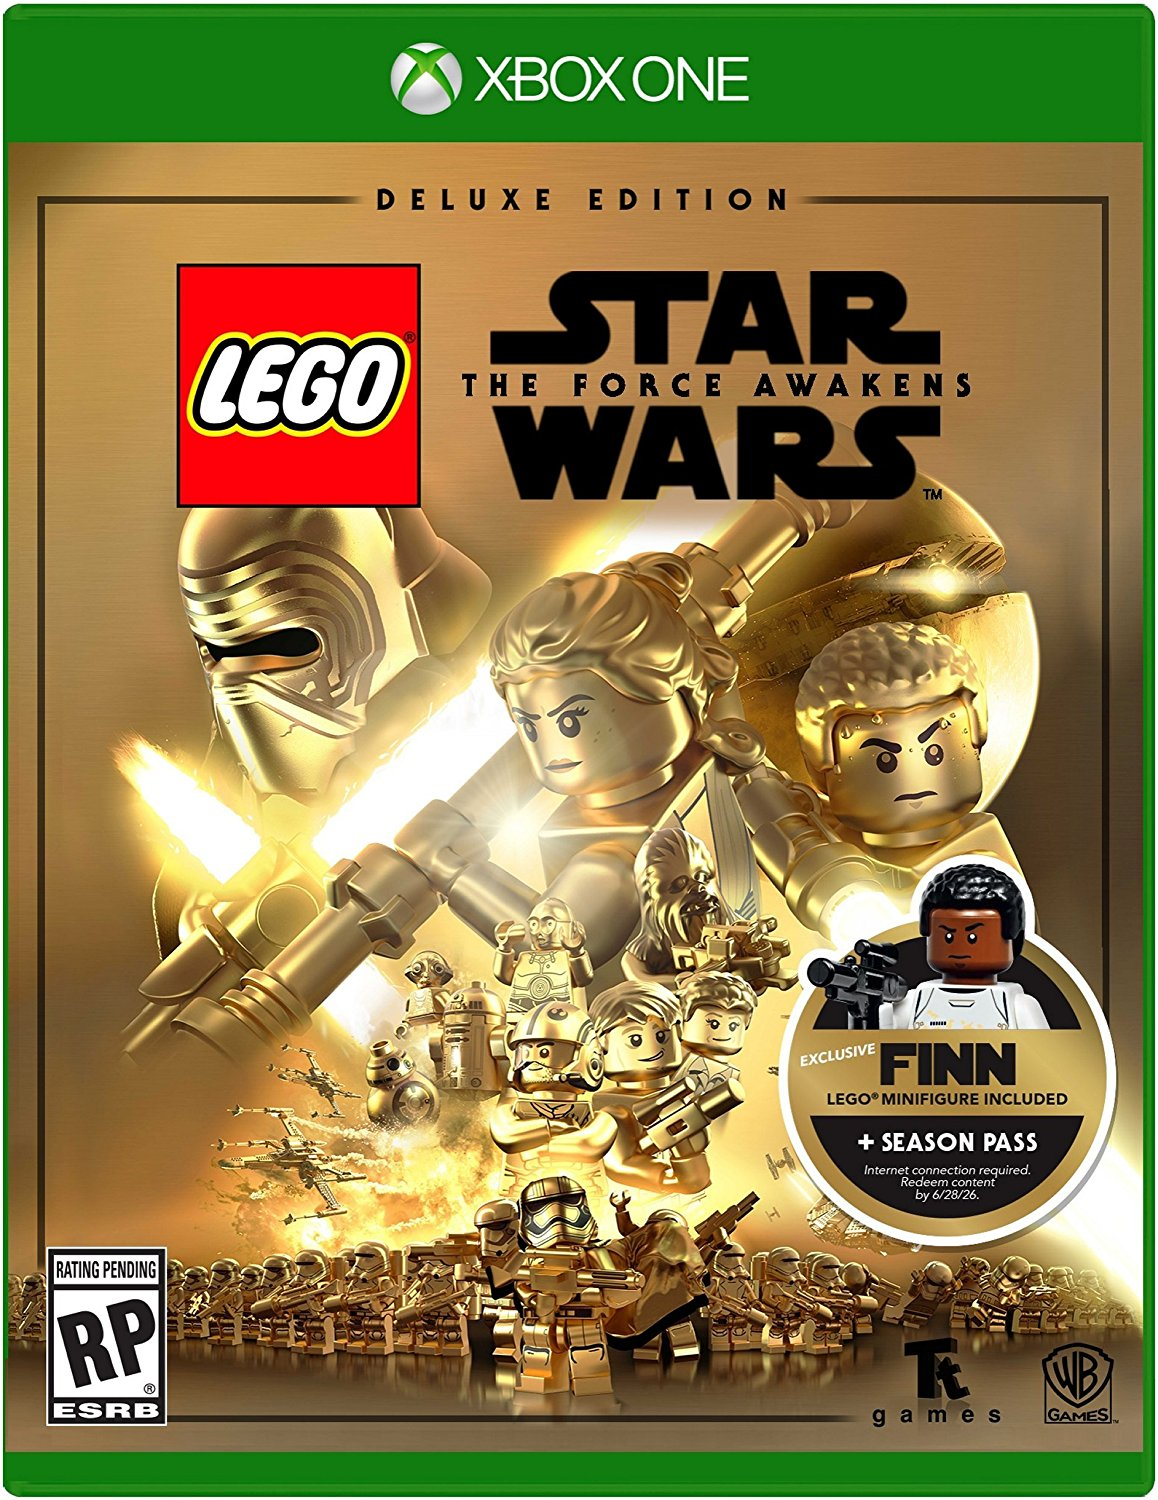 Warner Bros. Lego Star Wars The Force Awakens Deluxe Edition (Xbox One) by TT Games Ltd